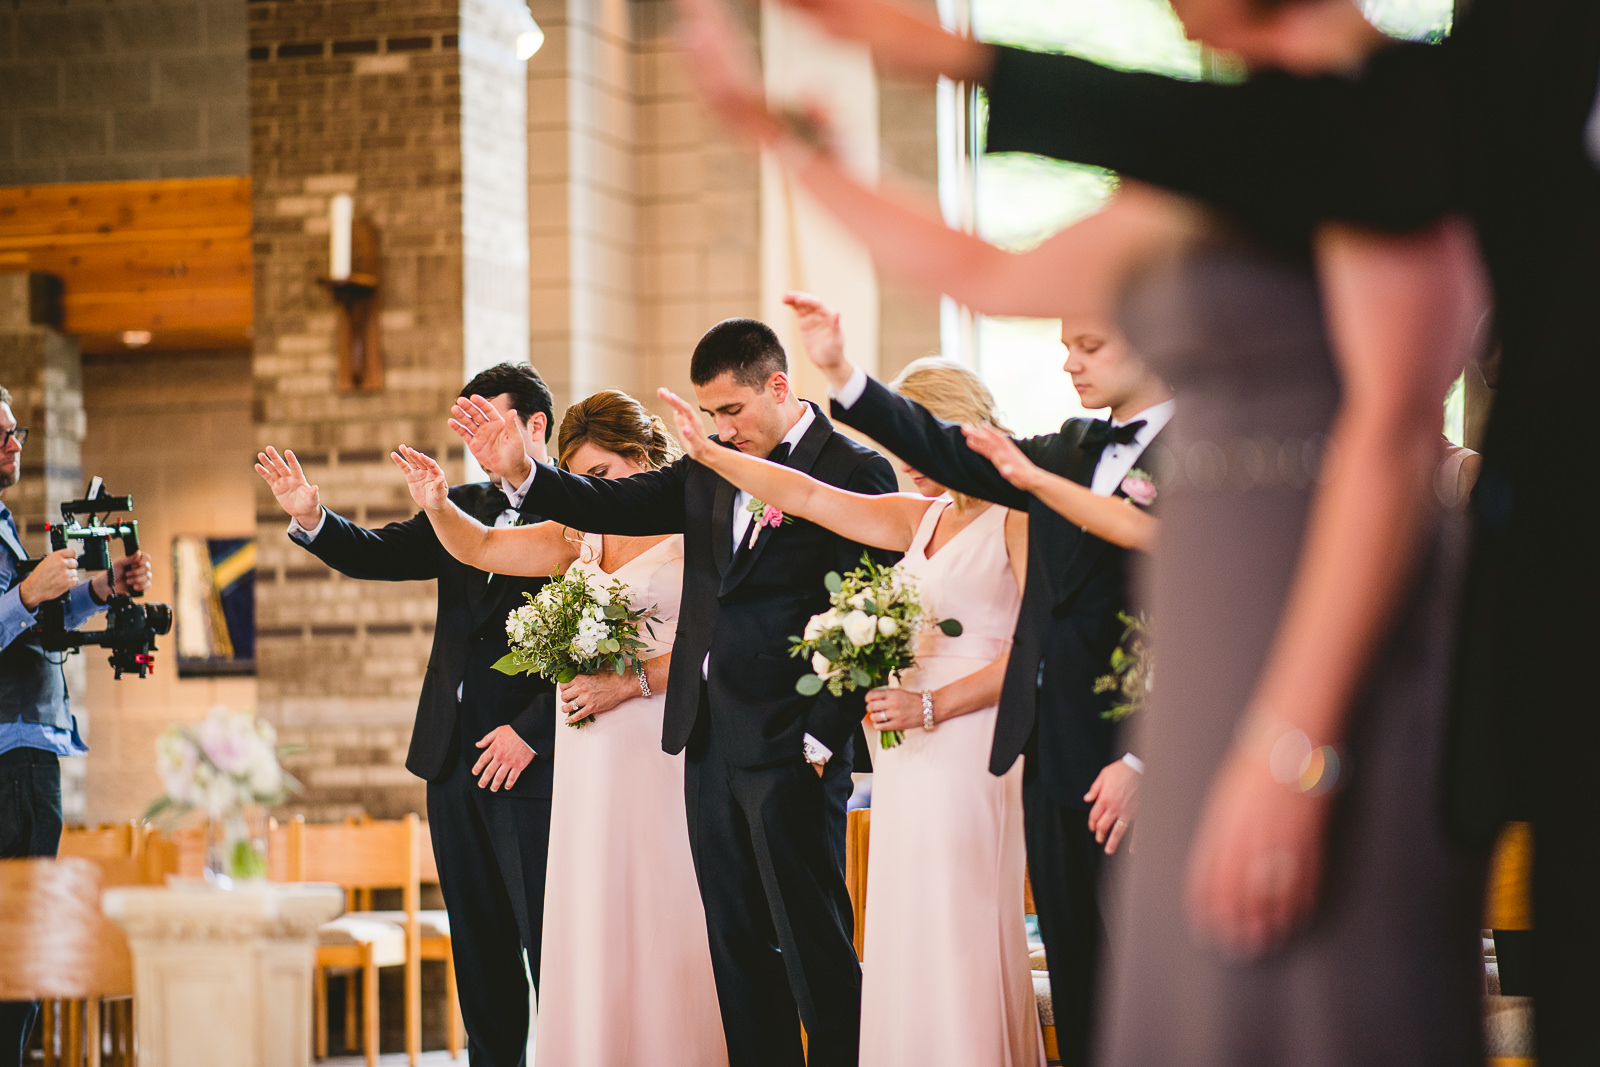 28 how to photograph church weddings - Club of Hillbrook Wedding // Jenna + Ben